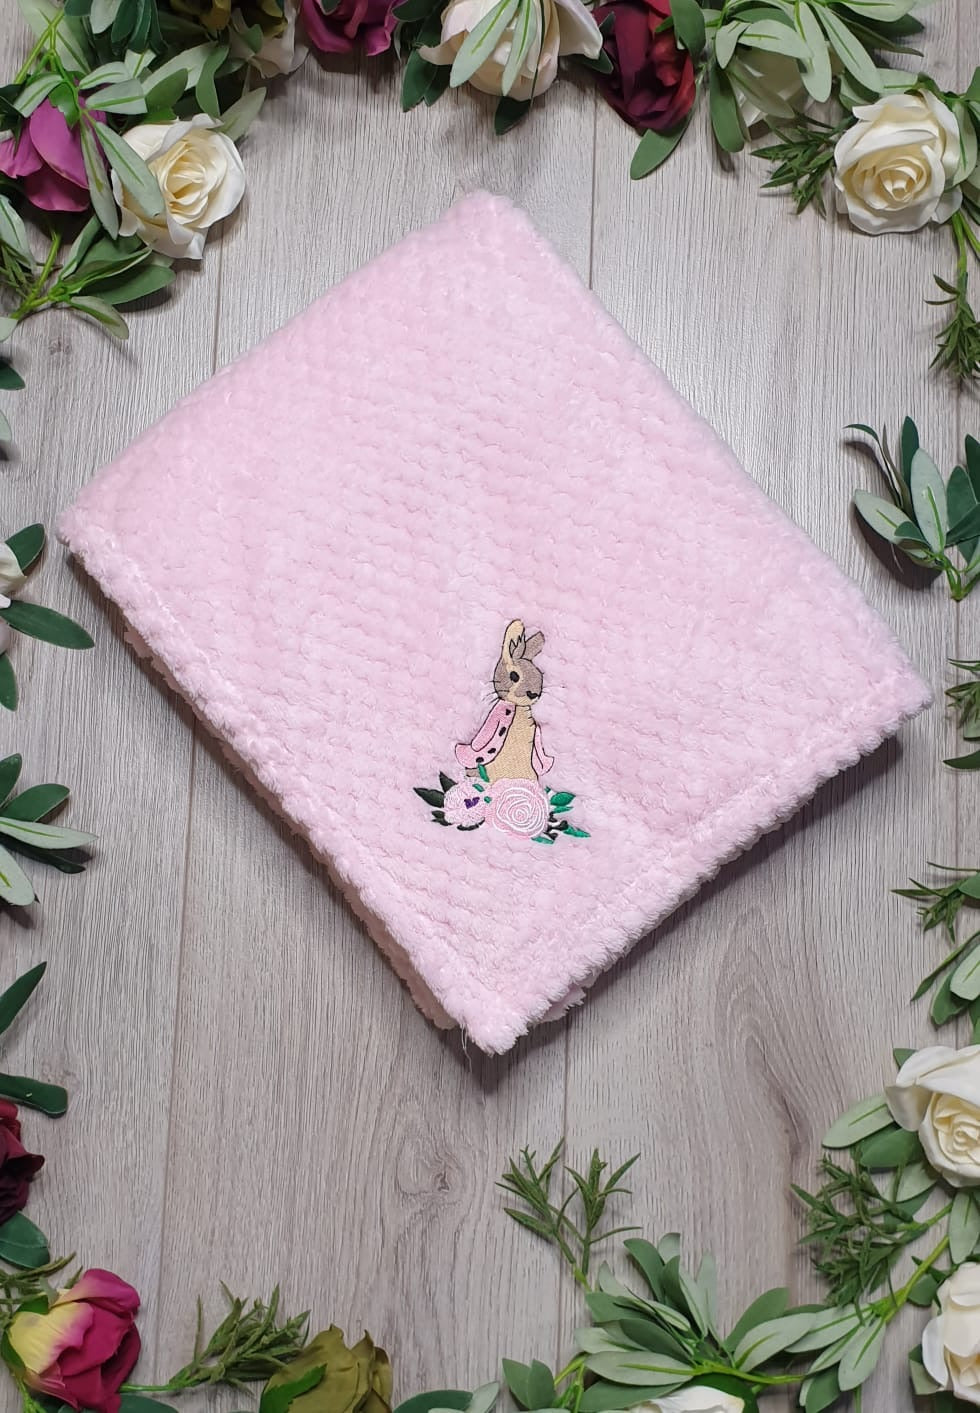 soft fleece blanket pink flopsy bunny beatrix potter